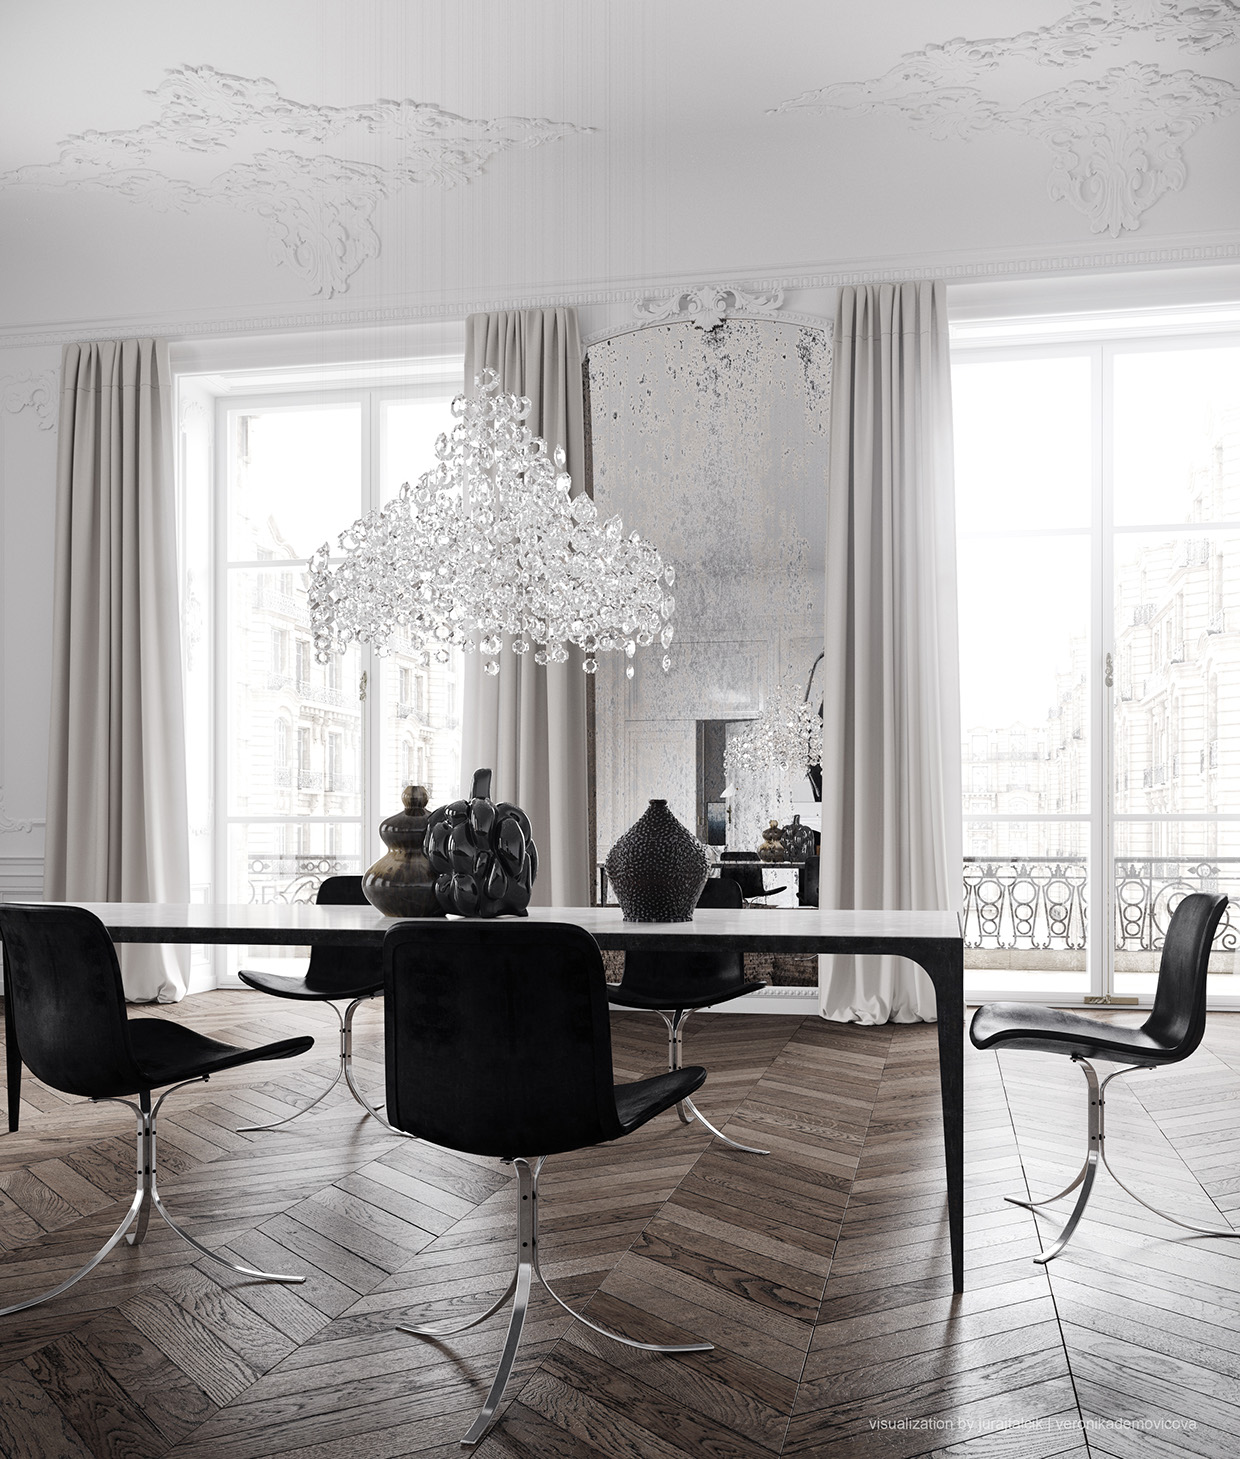 Paris Interior Design paris apartment interior design | designsetter minimalist design